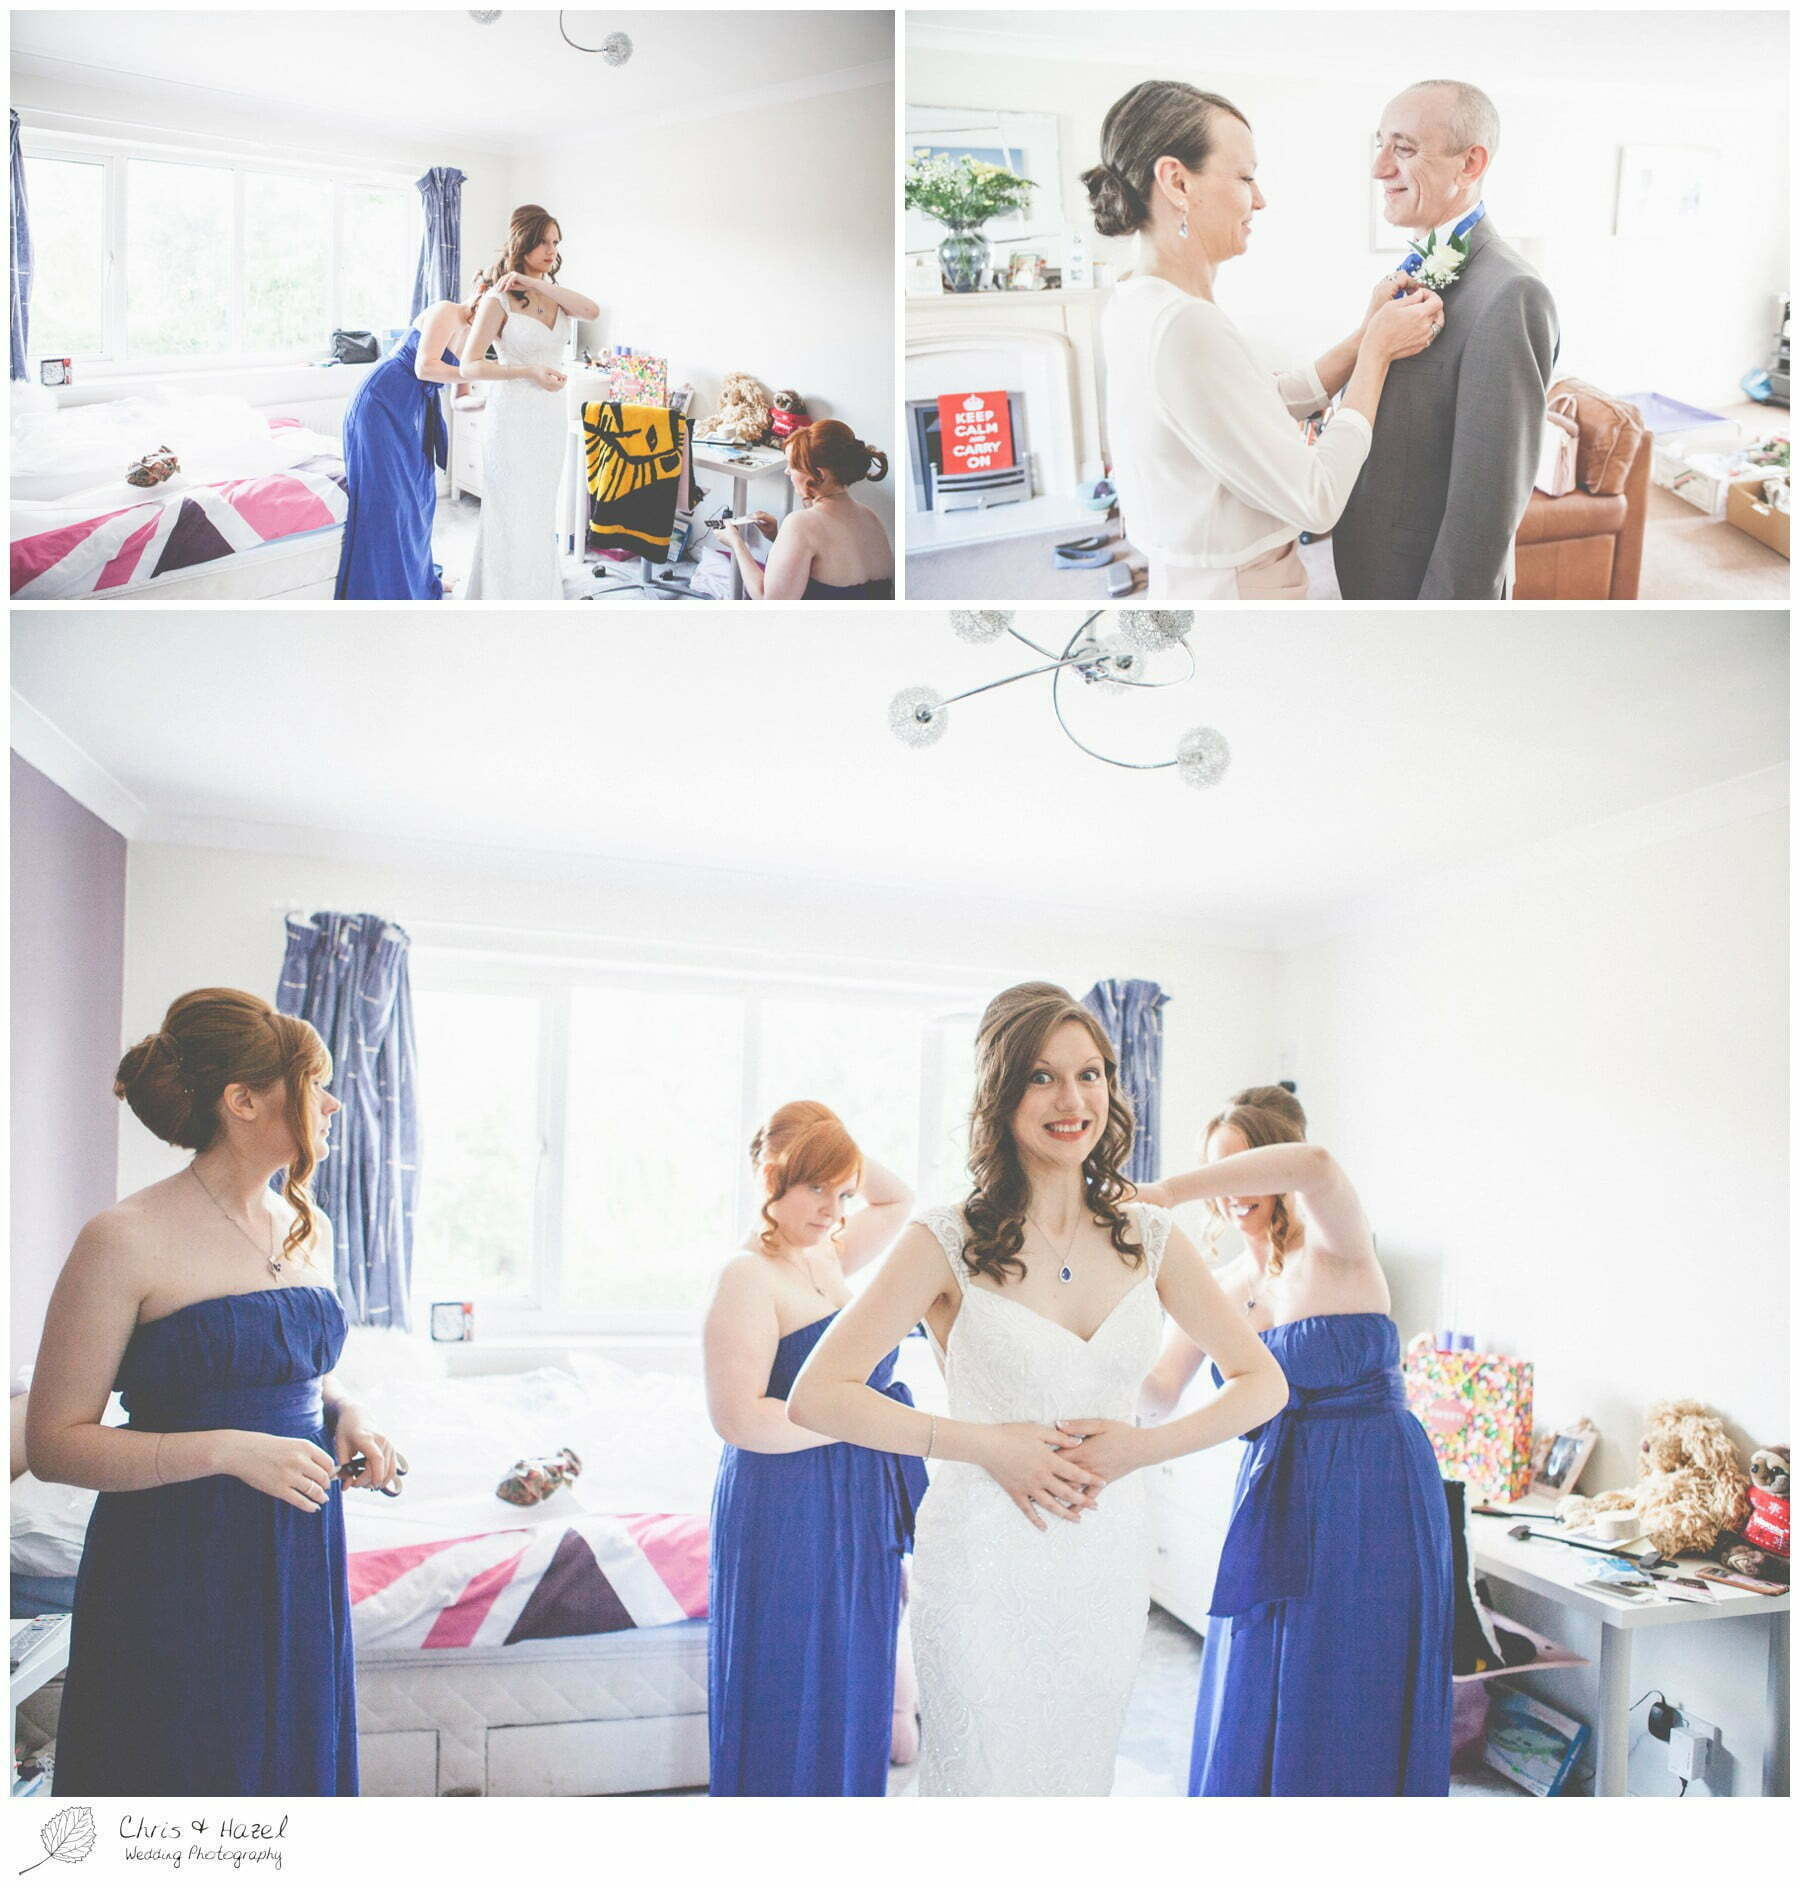 bridal preparations, documentary wedding photography, Preston Wedding Photographer, preston, wedding, photographer, Bartle Hall Wedding Photographer, battle hall, Lancashire wedding photographer, Chris and Hazel Wedding Photography, Tom Goulding, Micha Waite, Micha Goulding,